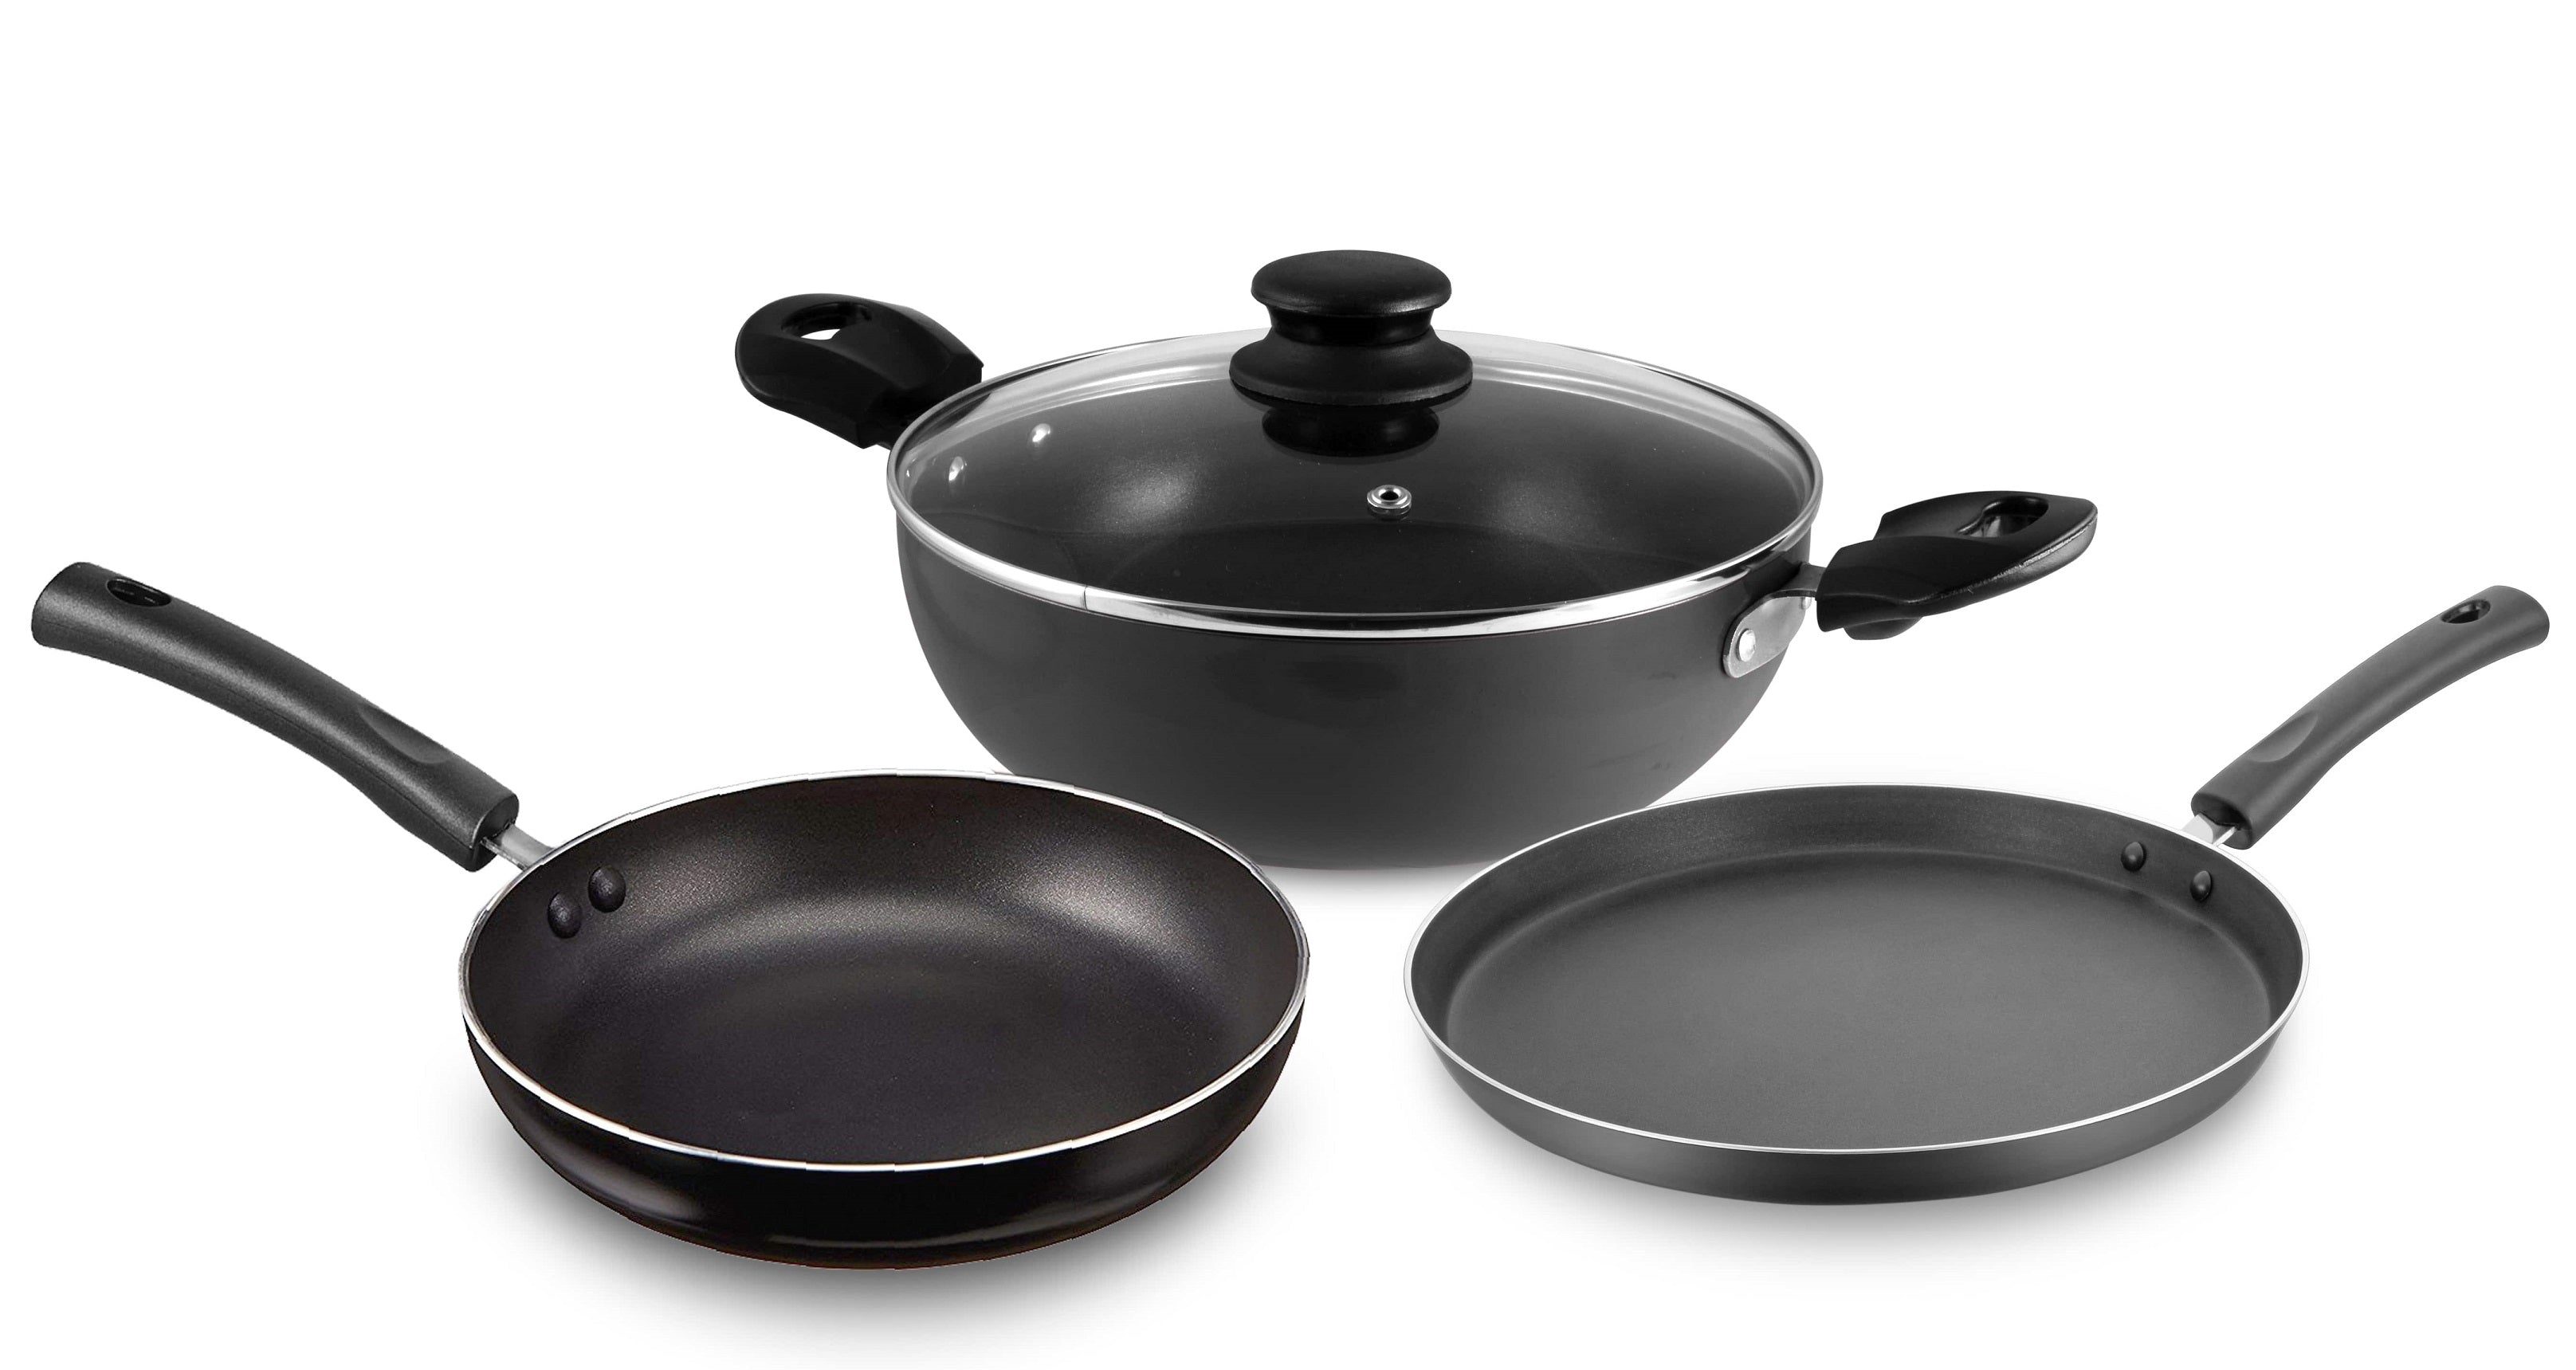 Allure Non Stick Cookware set S/3